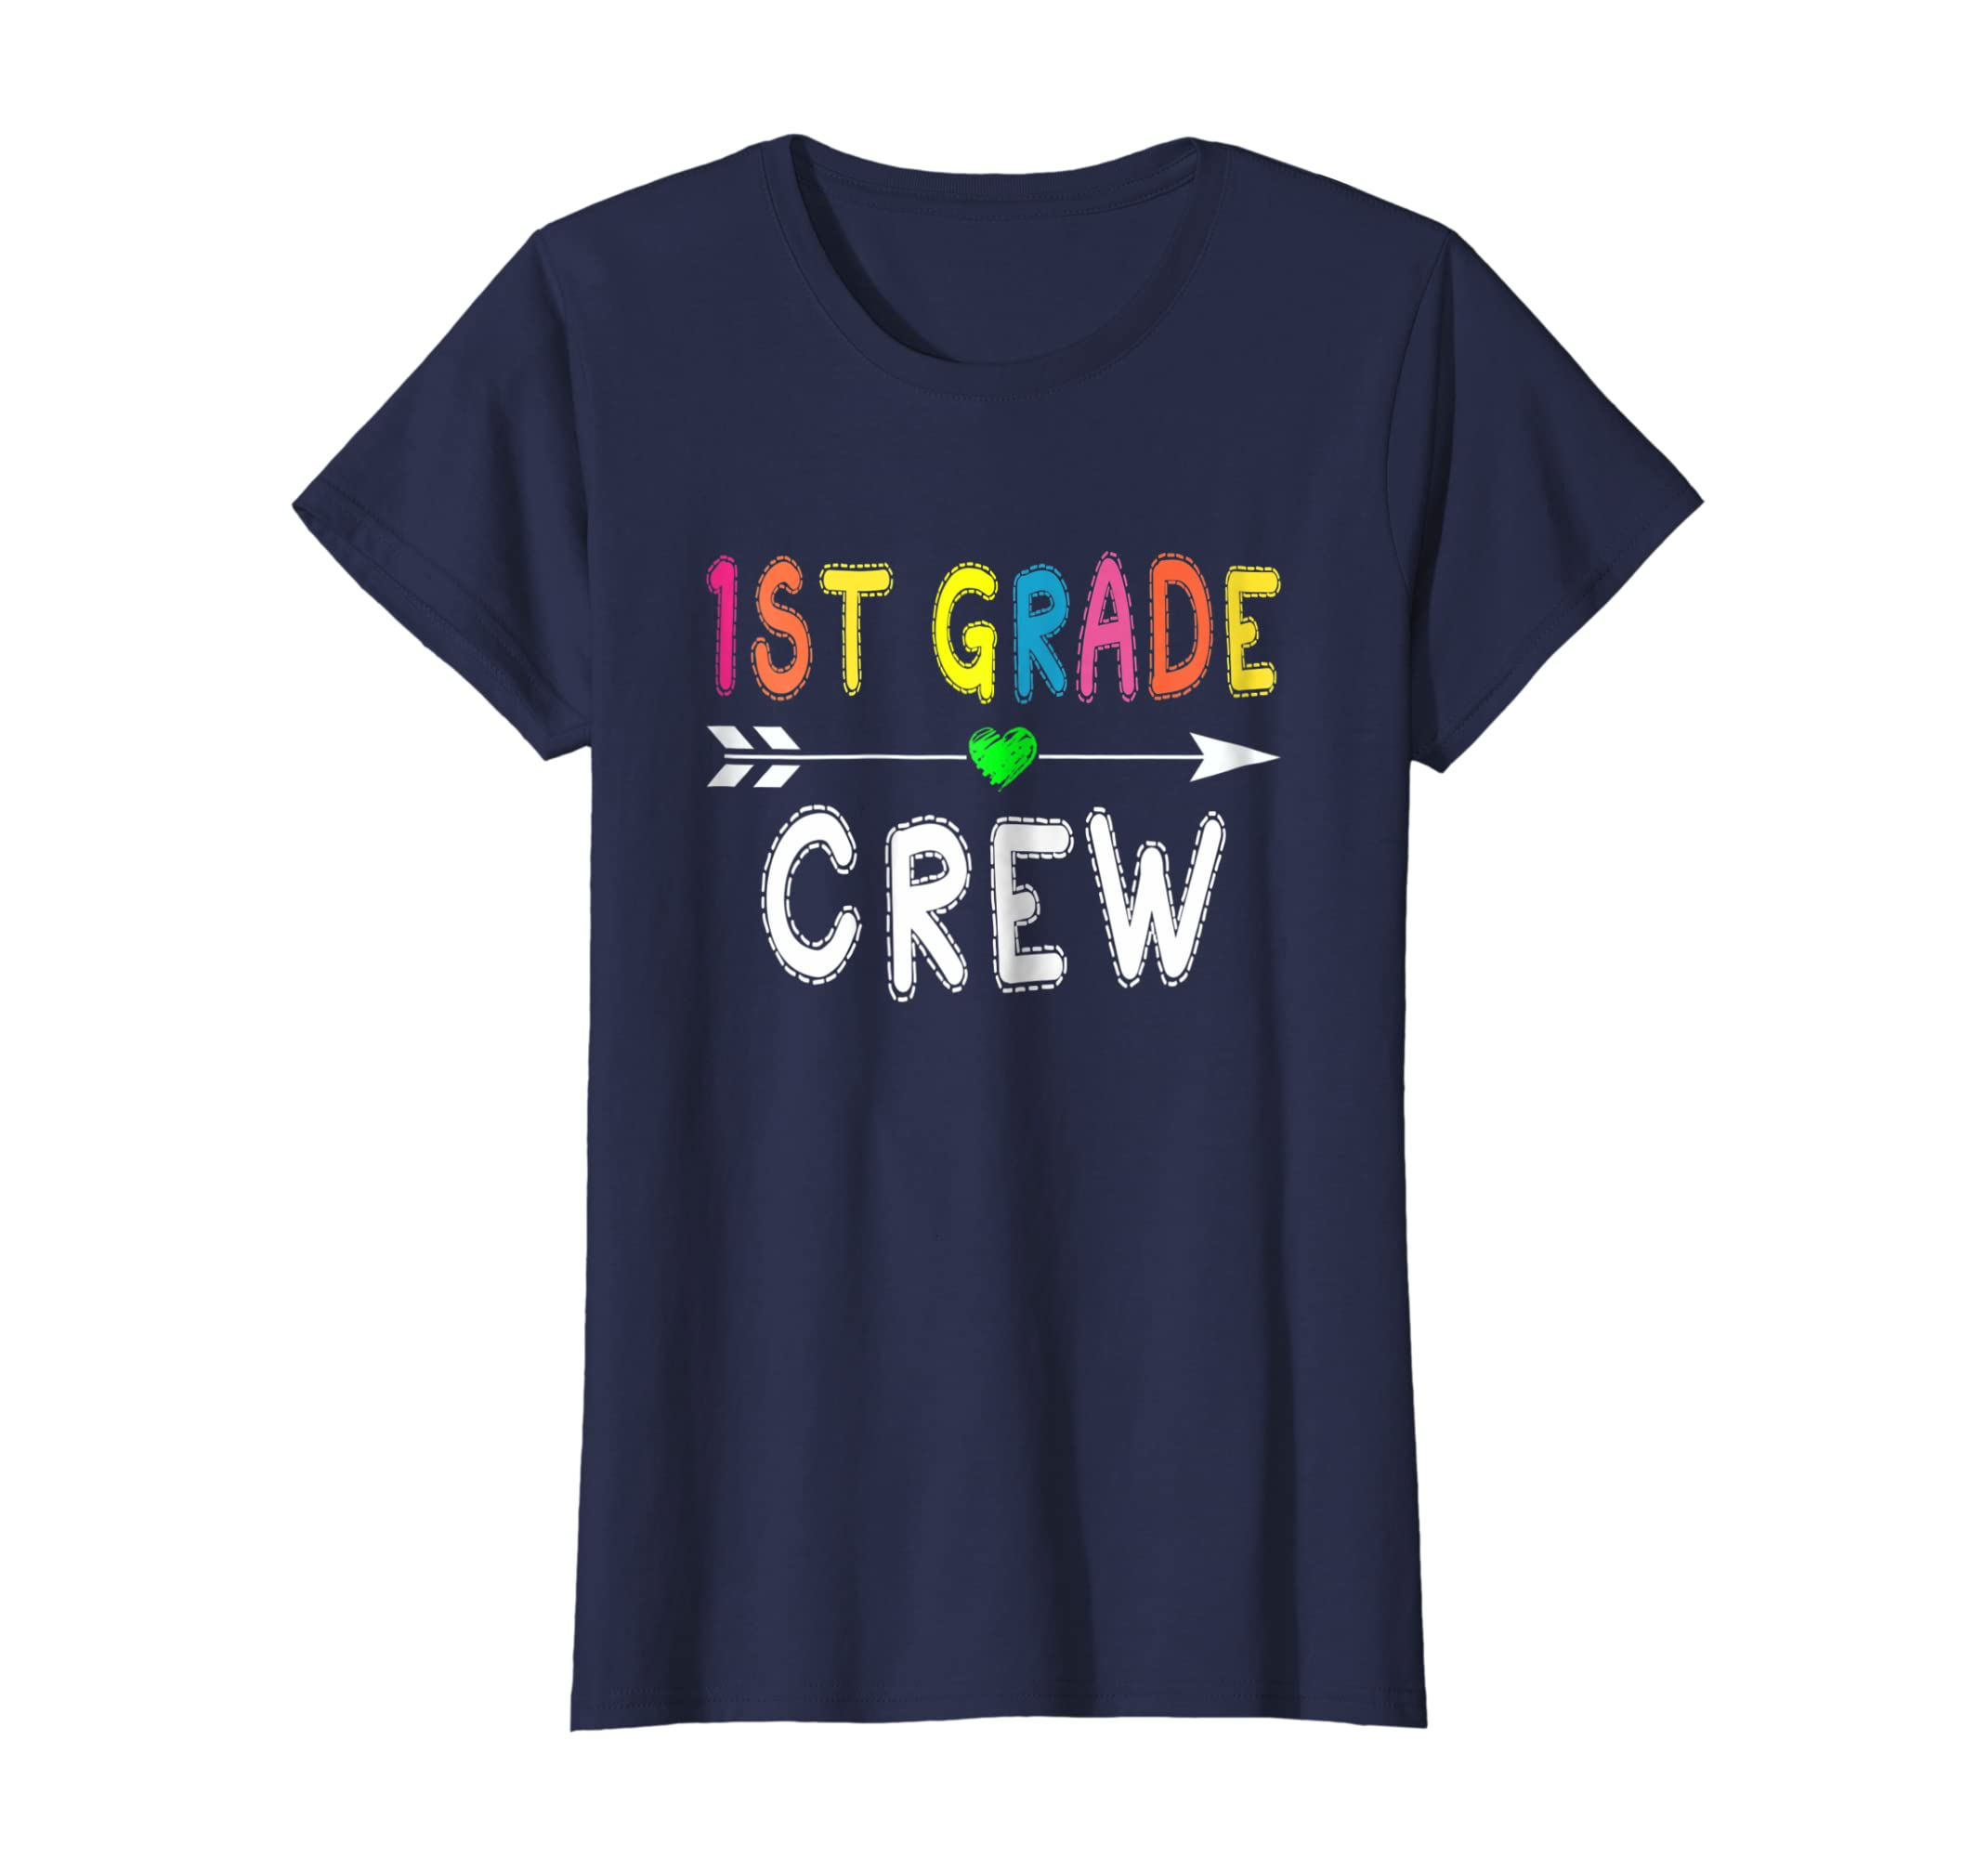 a1a0aaecb18 Amazon.com  1st Grade Crew For 1st Grade Teacher T Shirt Back To School   Clothing